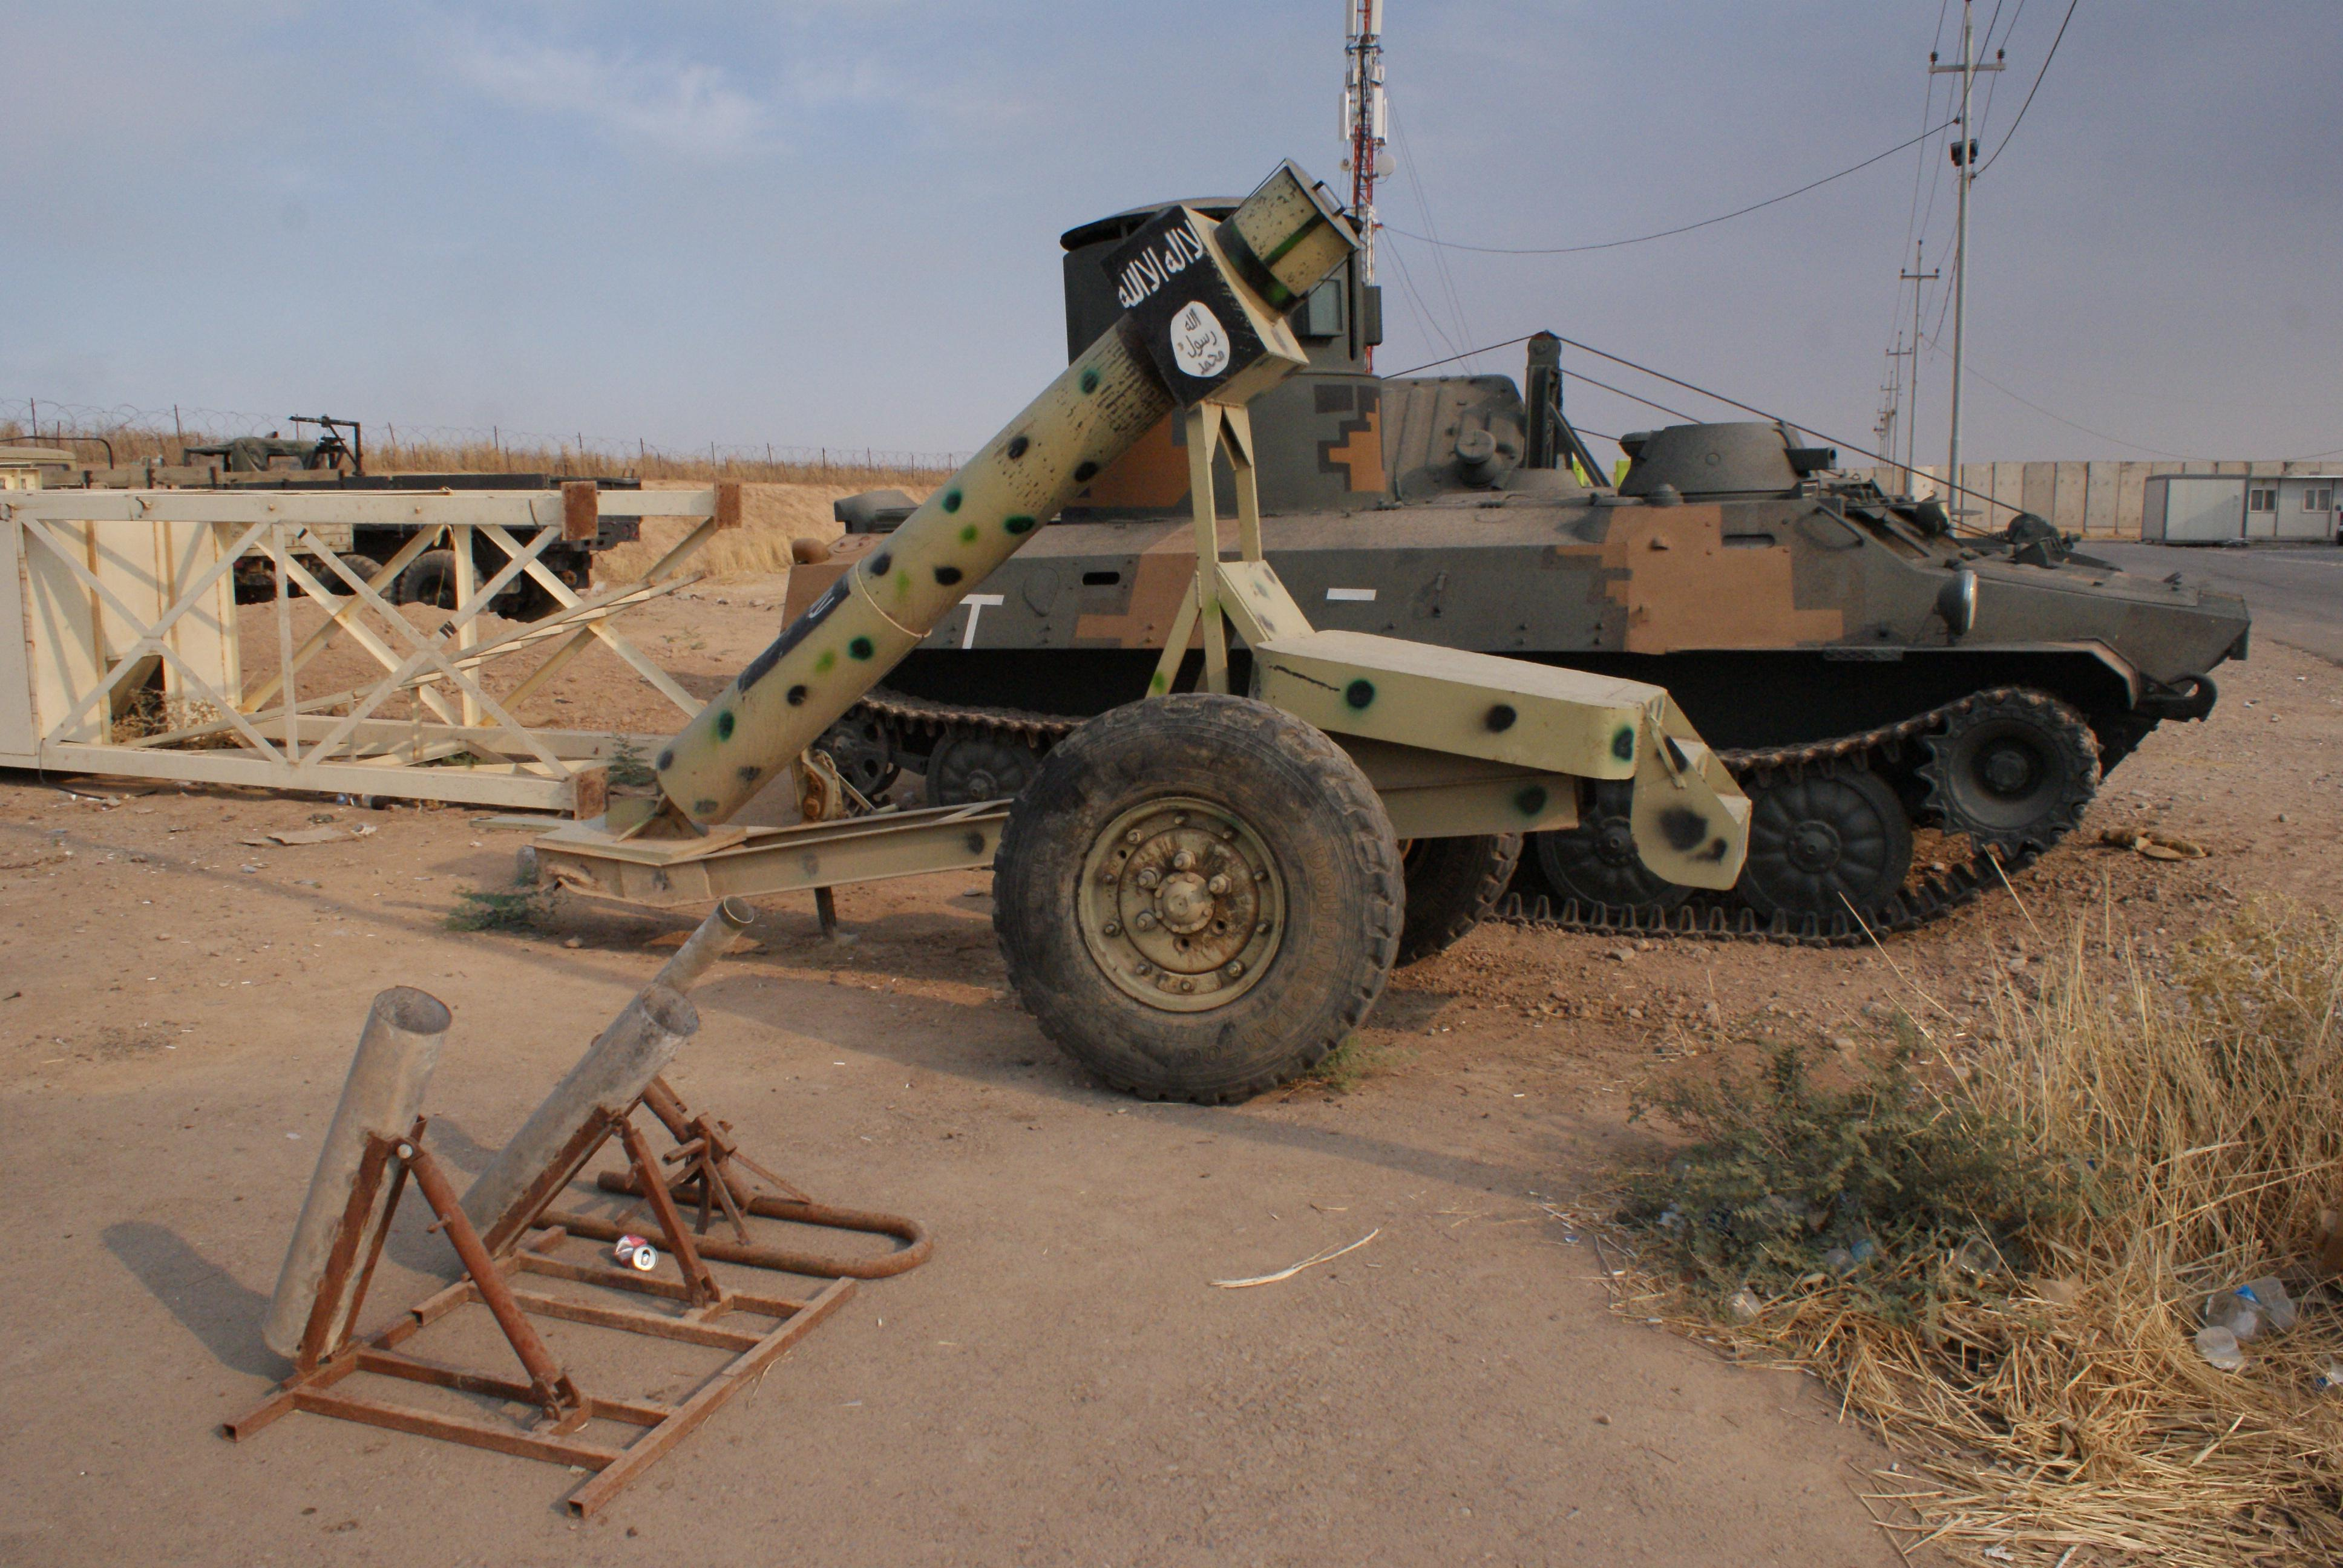 Improvised weapons and vehicles of ISIS